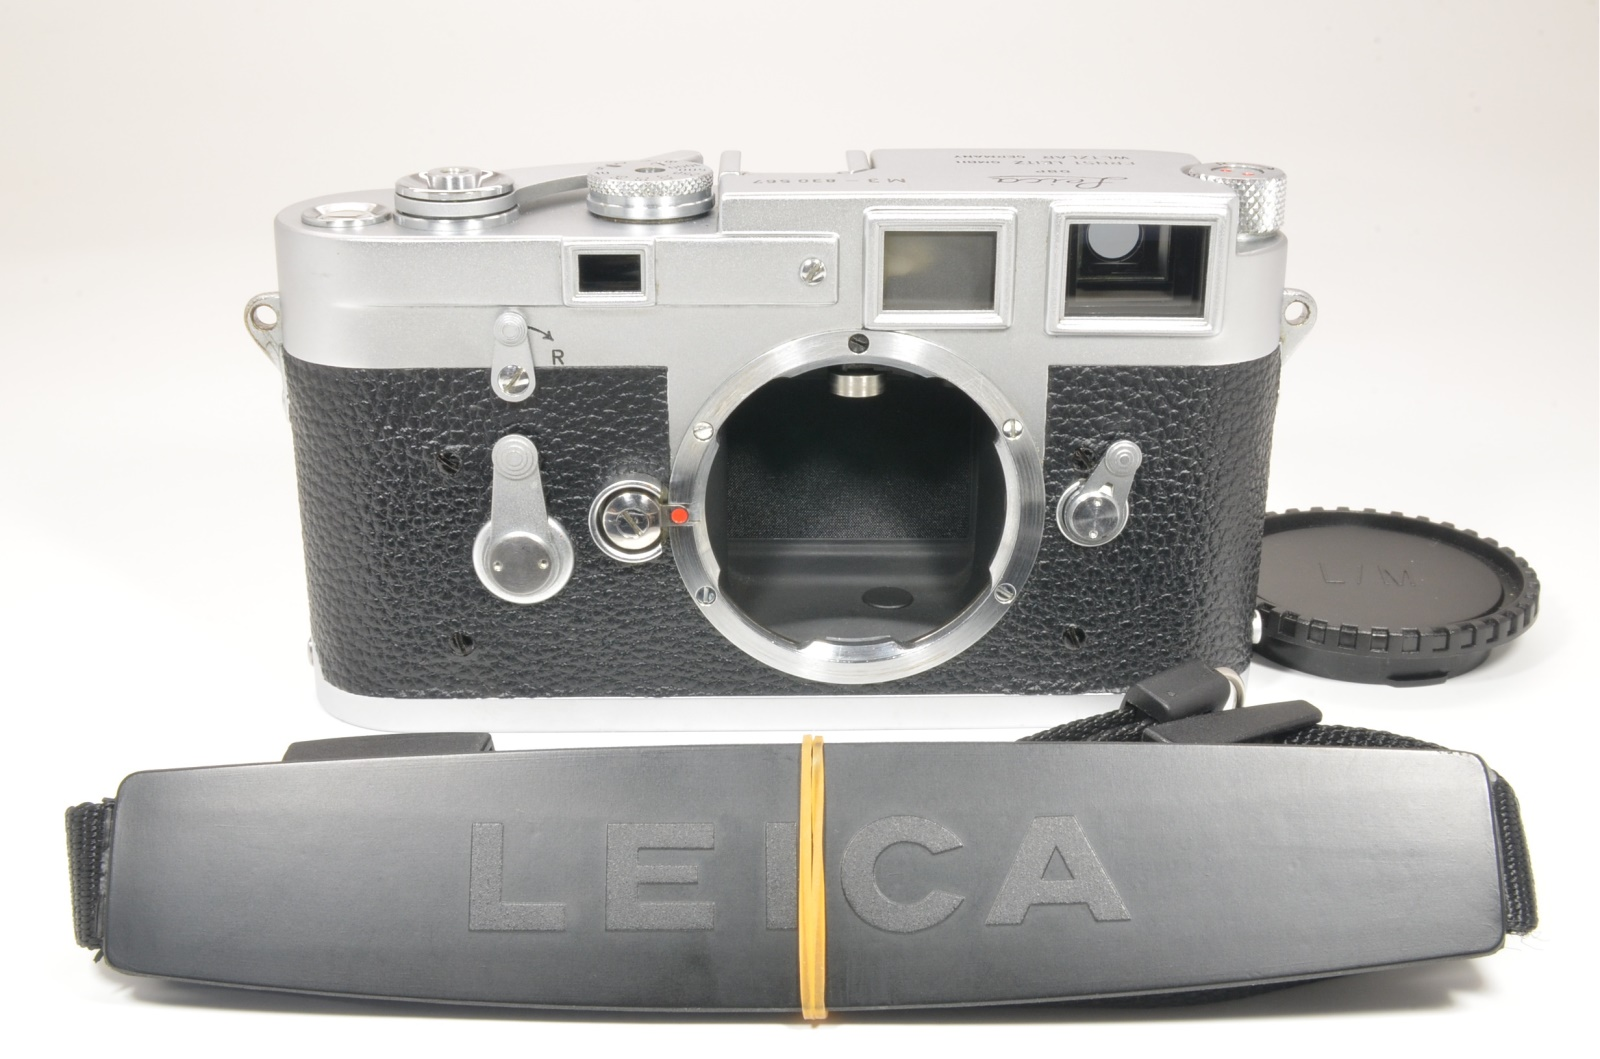 leica m3 double stroke s/n 830567 year 1956 with strap shooting tested